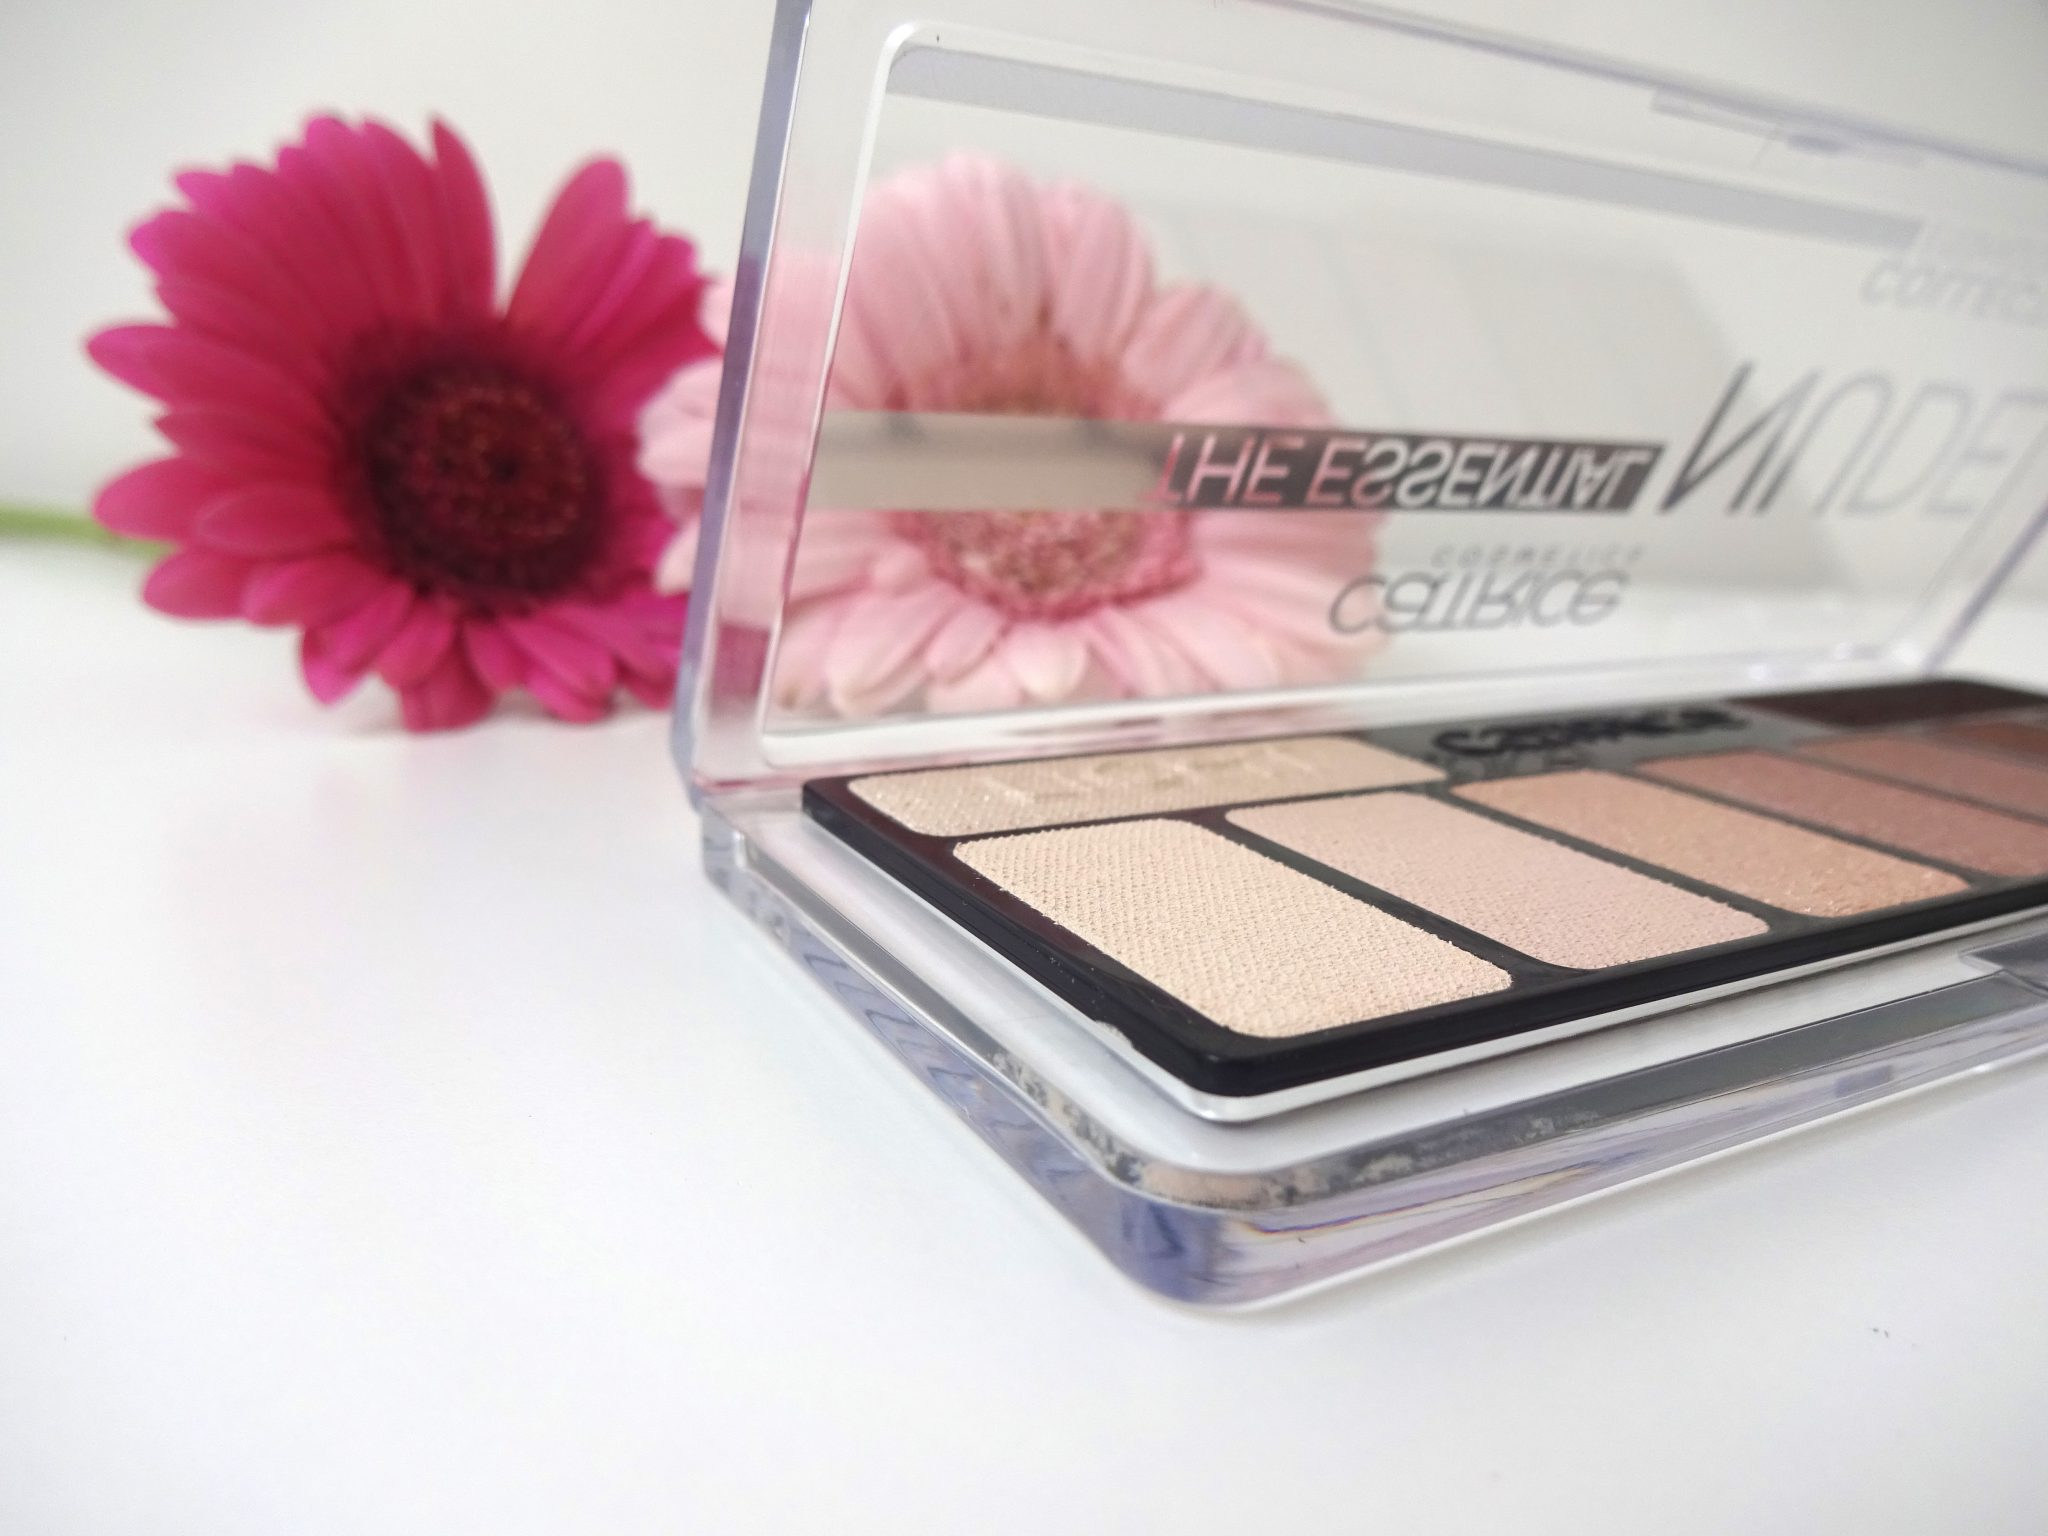 Catrice Nude collection eyeshadow Palette